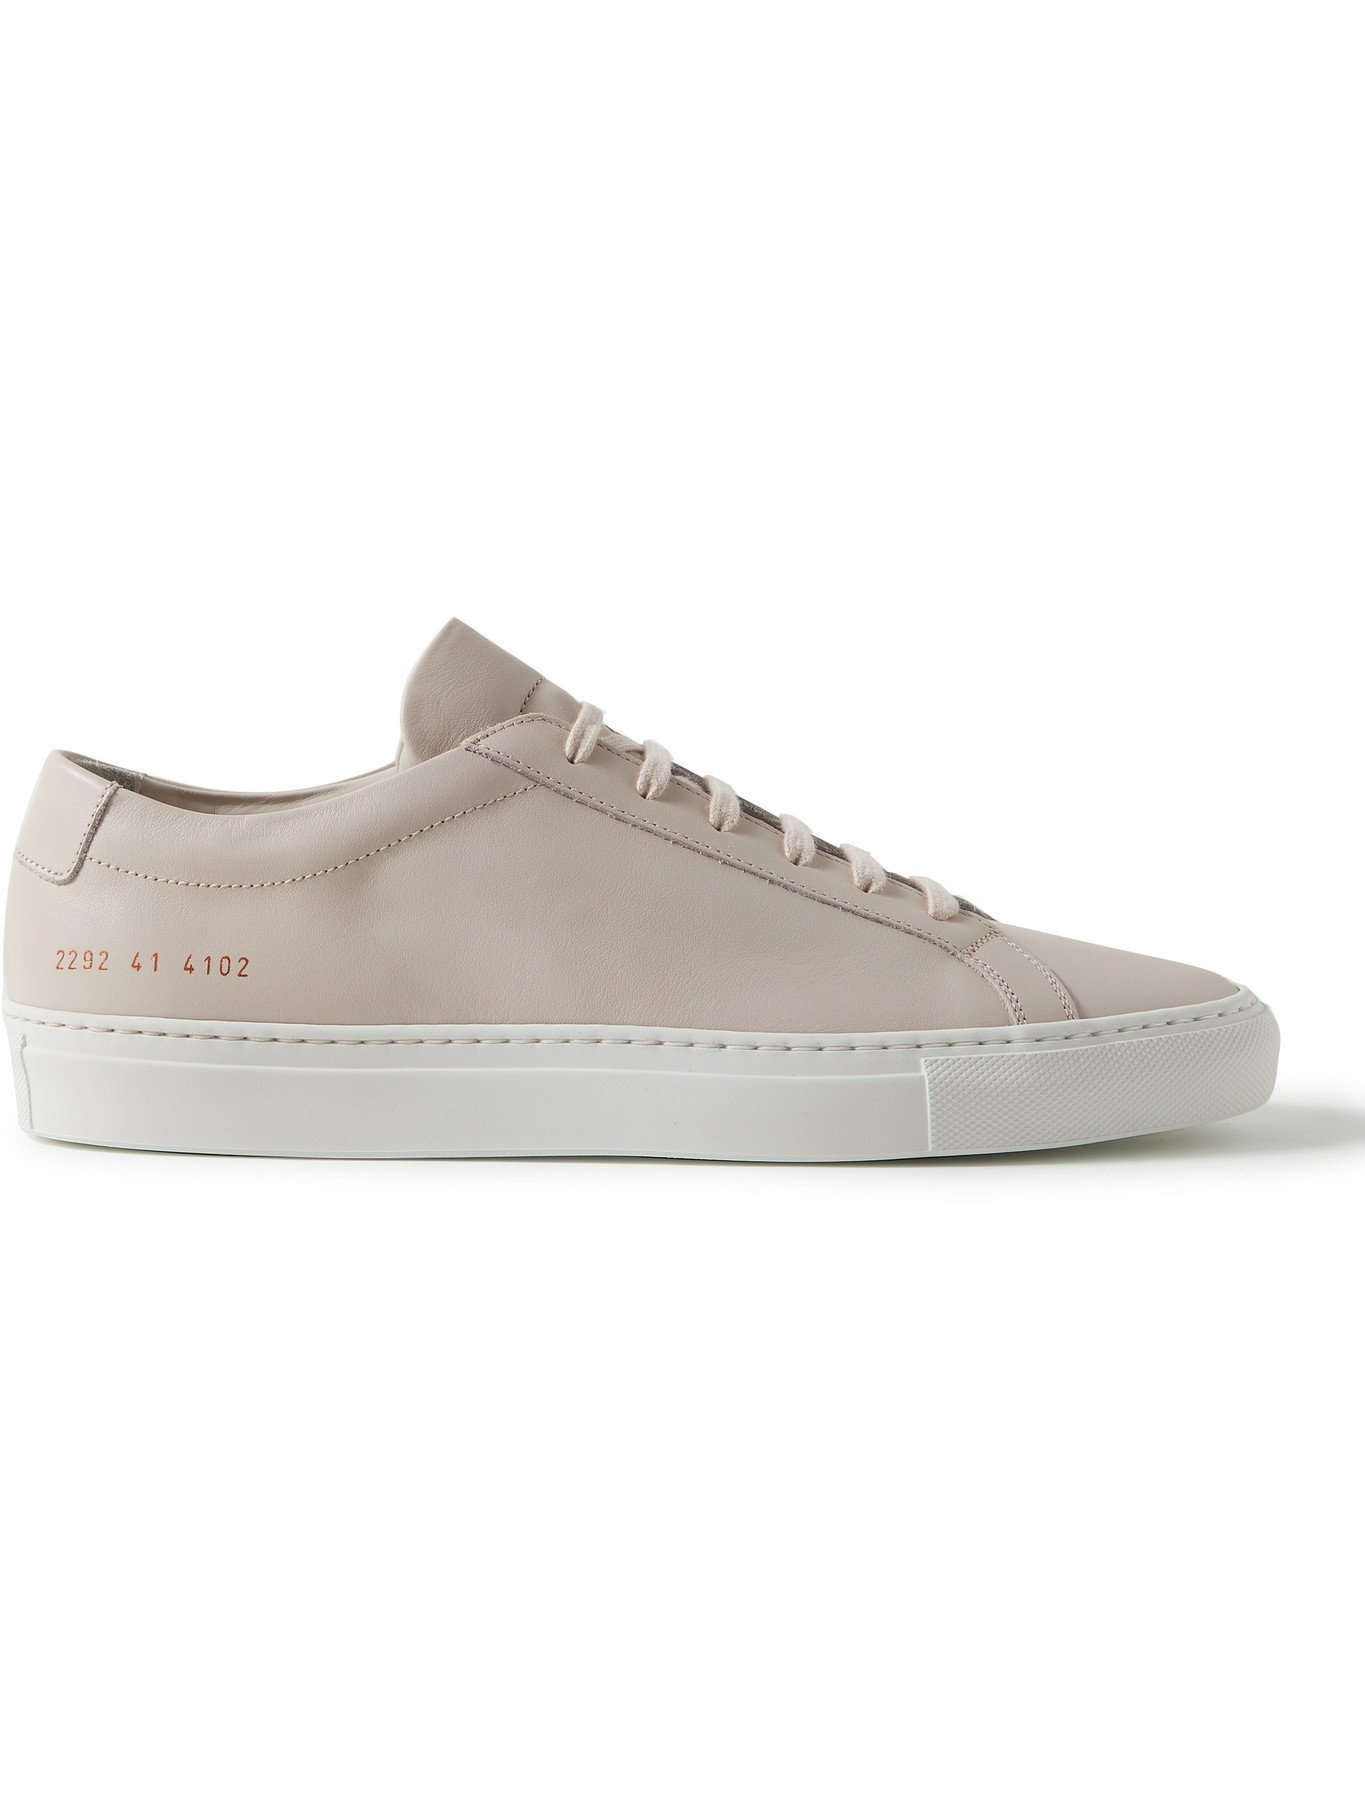 COMMON PROJECTS - Original Achilles Leather Sneakers - Neutrals